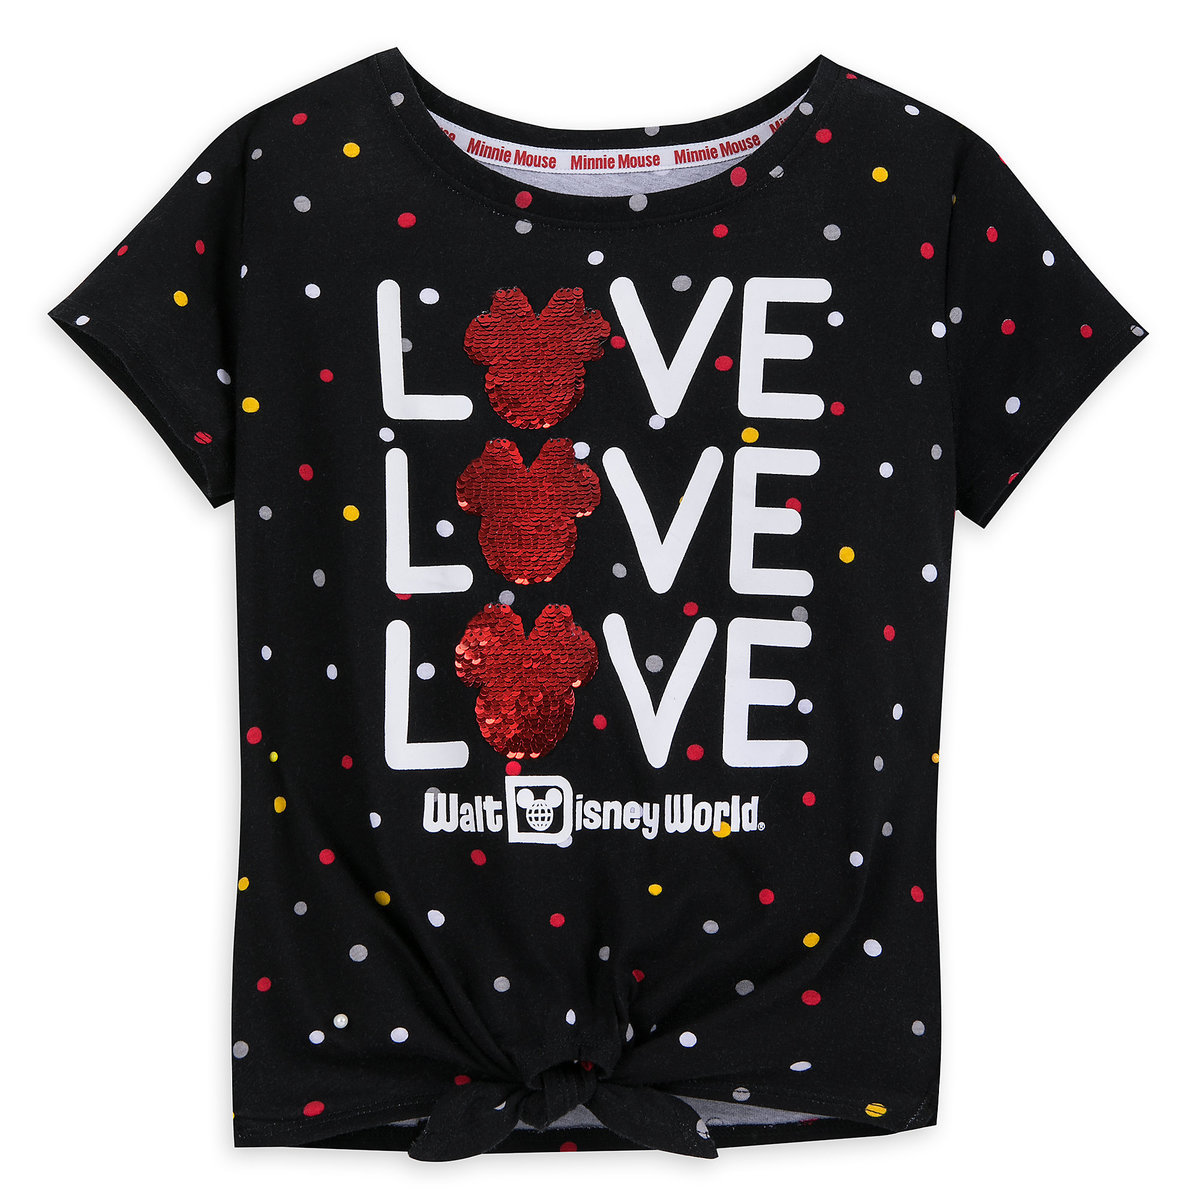 6975046f9622 Product Image of Minnie Mouse Reversible Sequin T-Shirt for Girls - Walt  Disney World